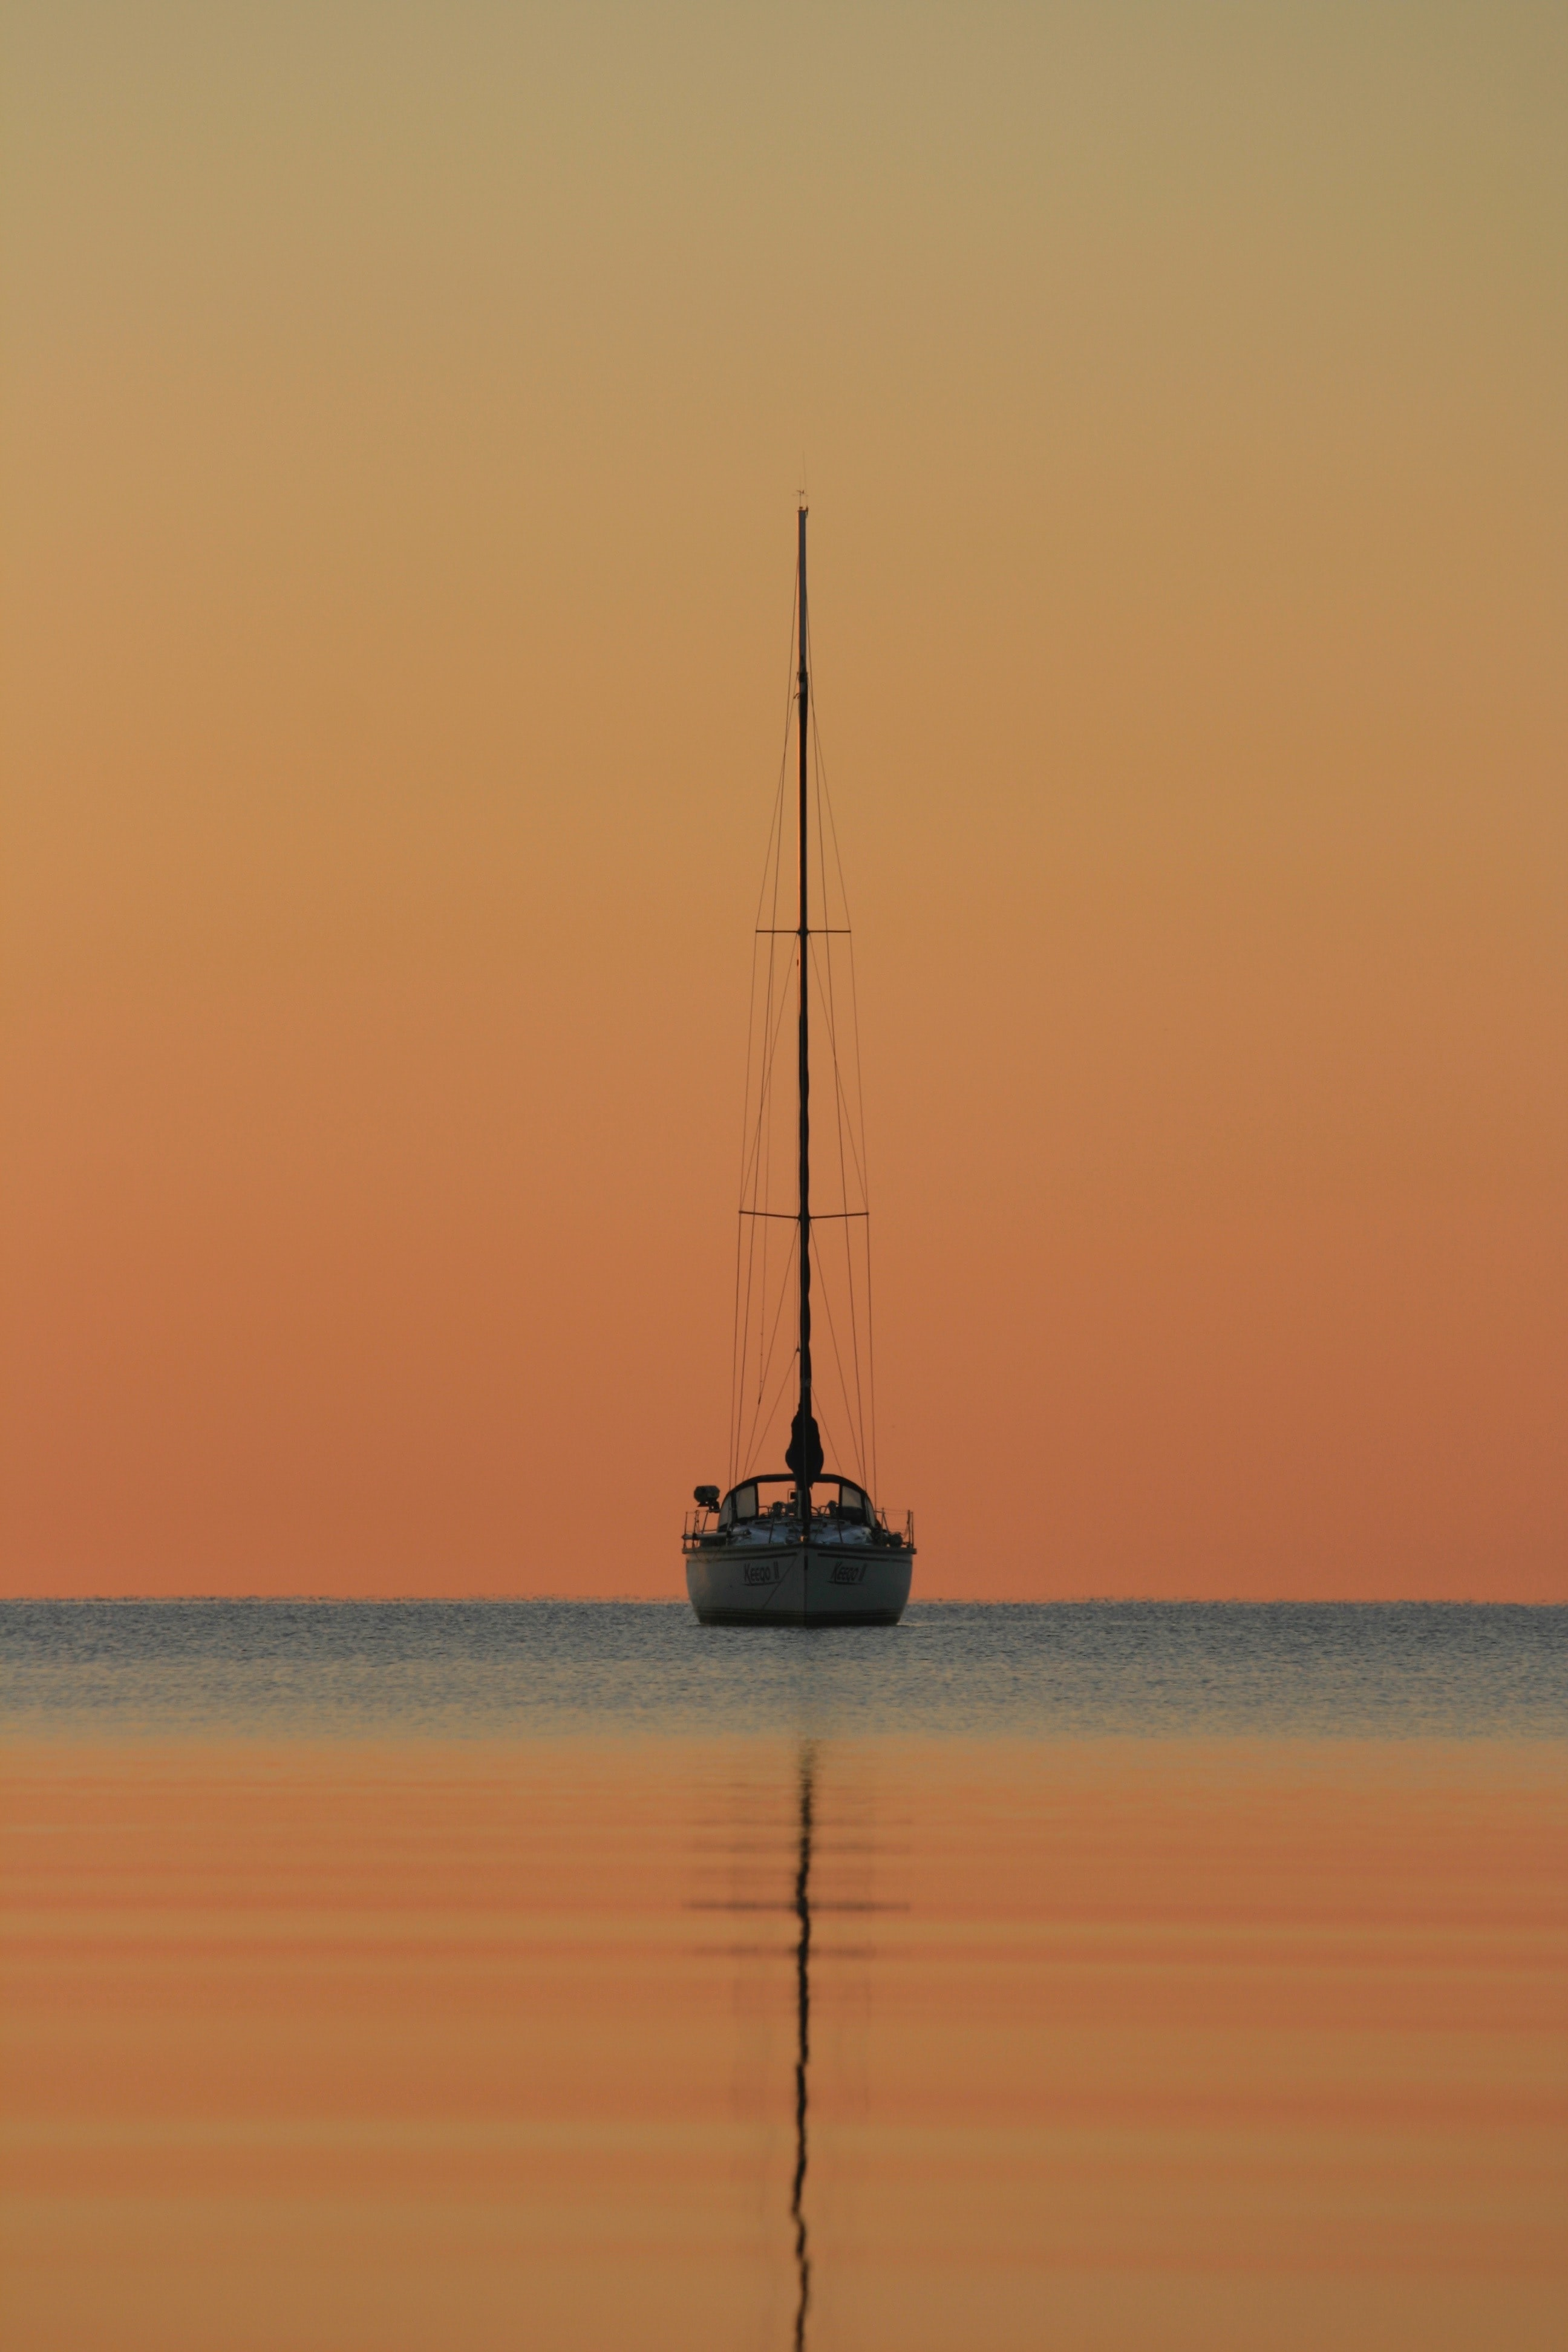 white and black boat on body of water during golden hour